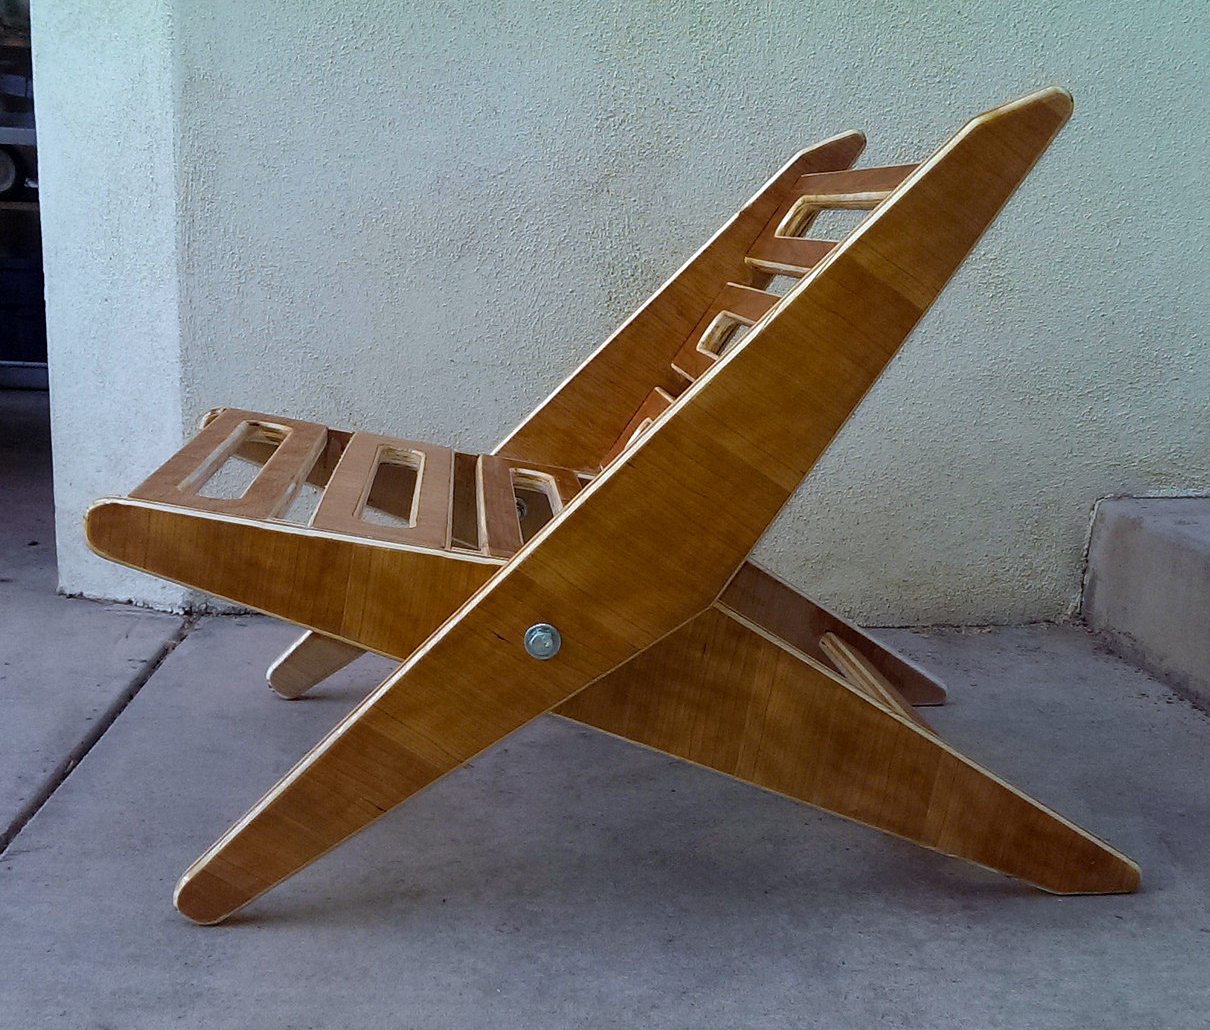 Folding Lounge-y Beach Chair - MechMate CNC Router Forum